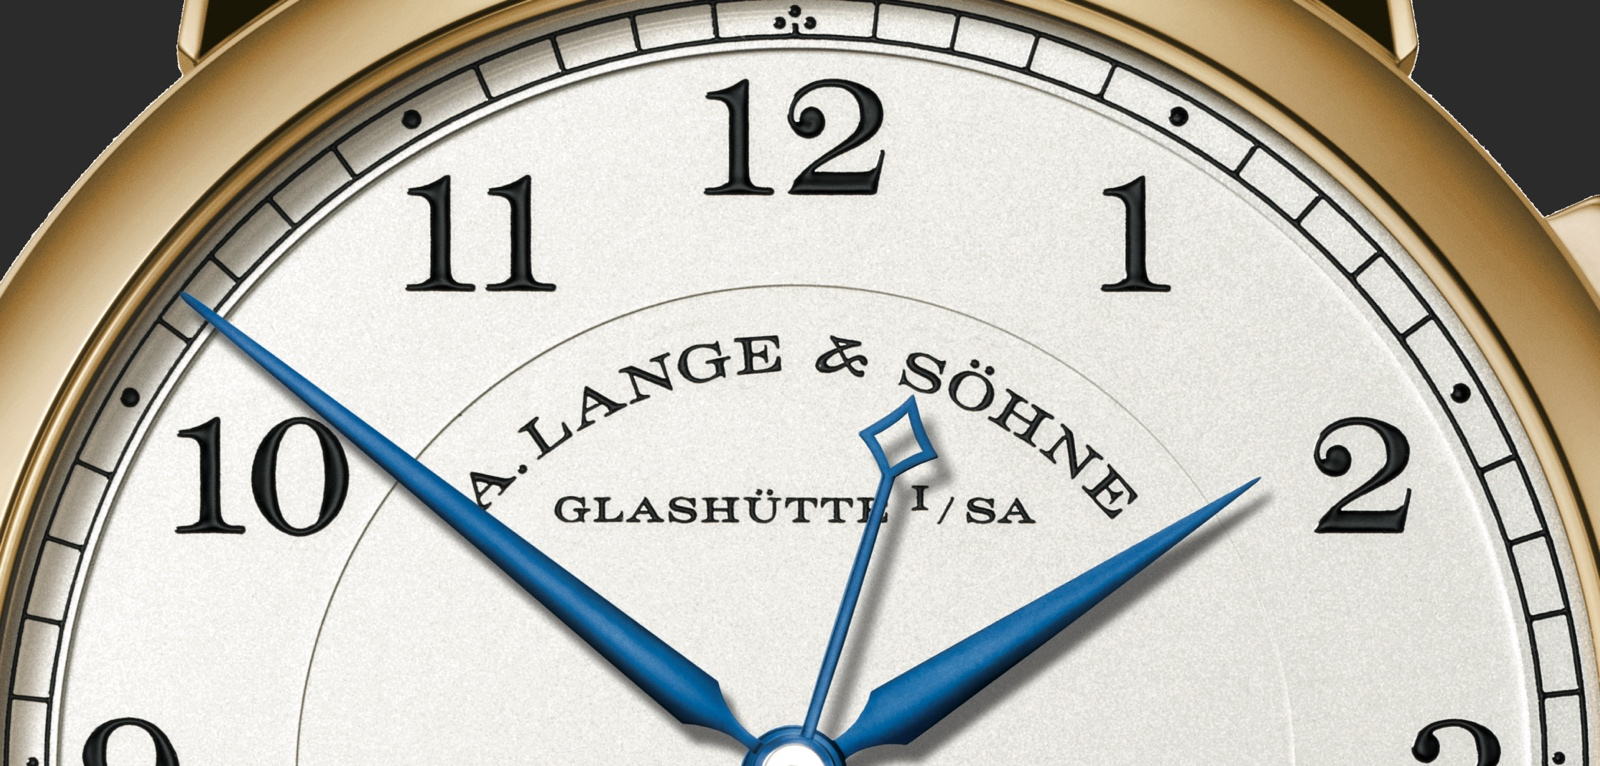 1815 Homage to Walter Lange Header